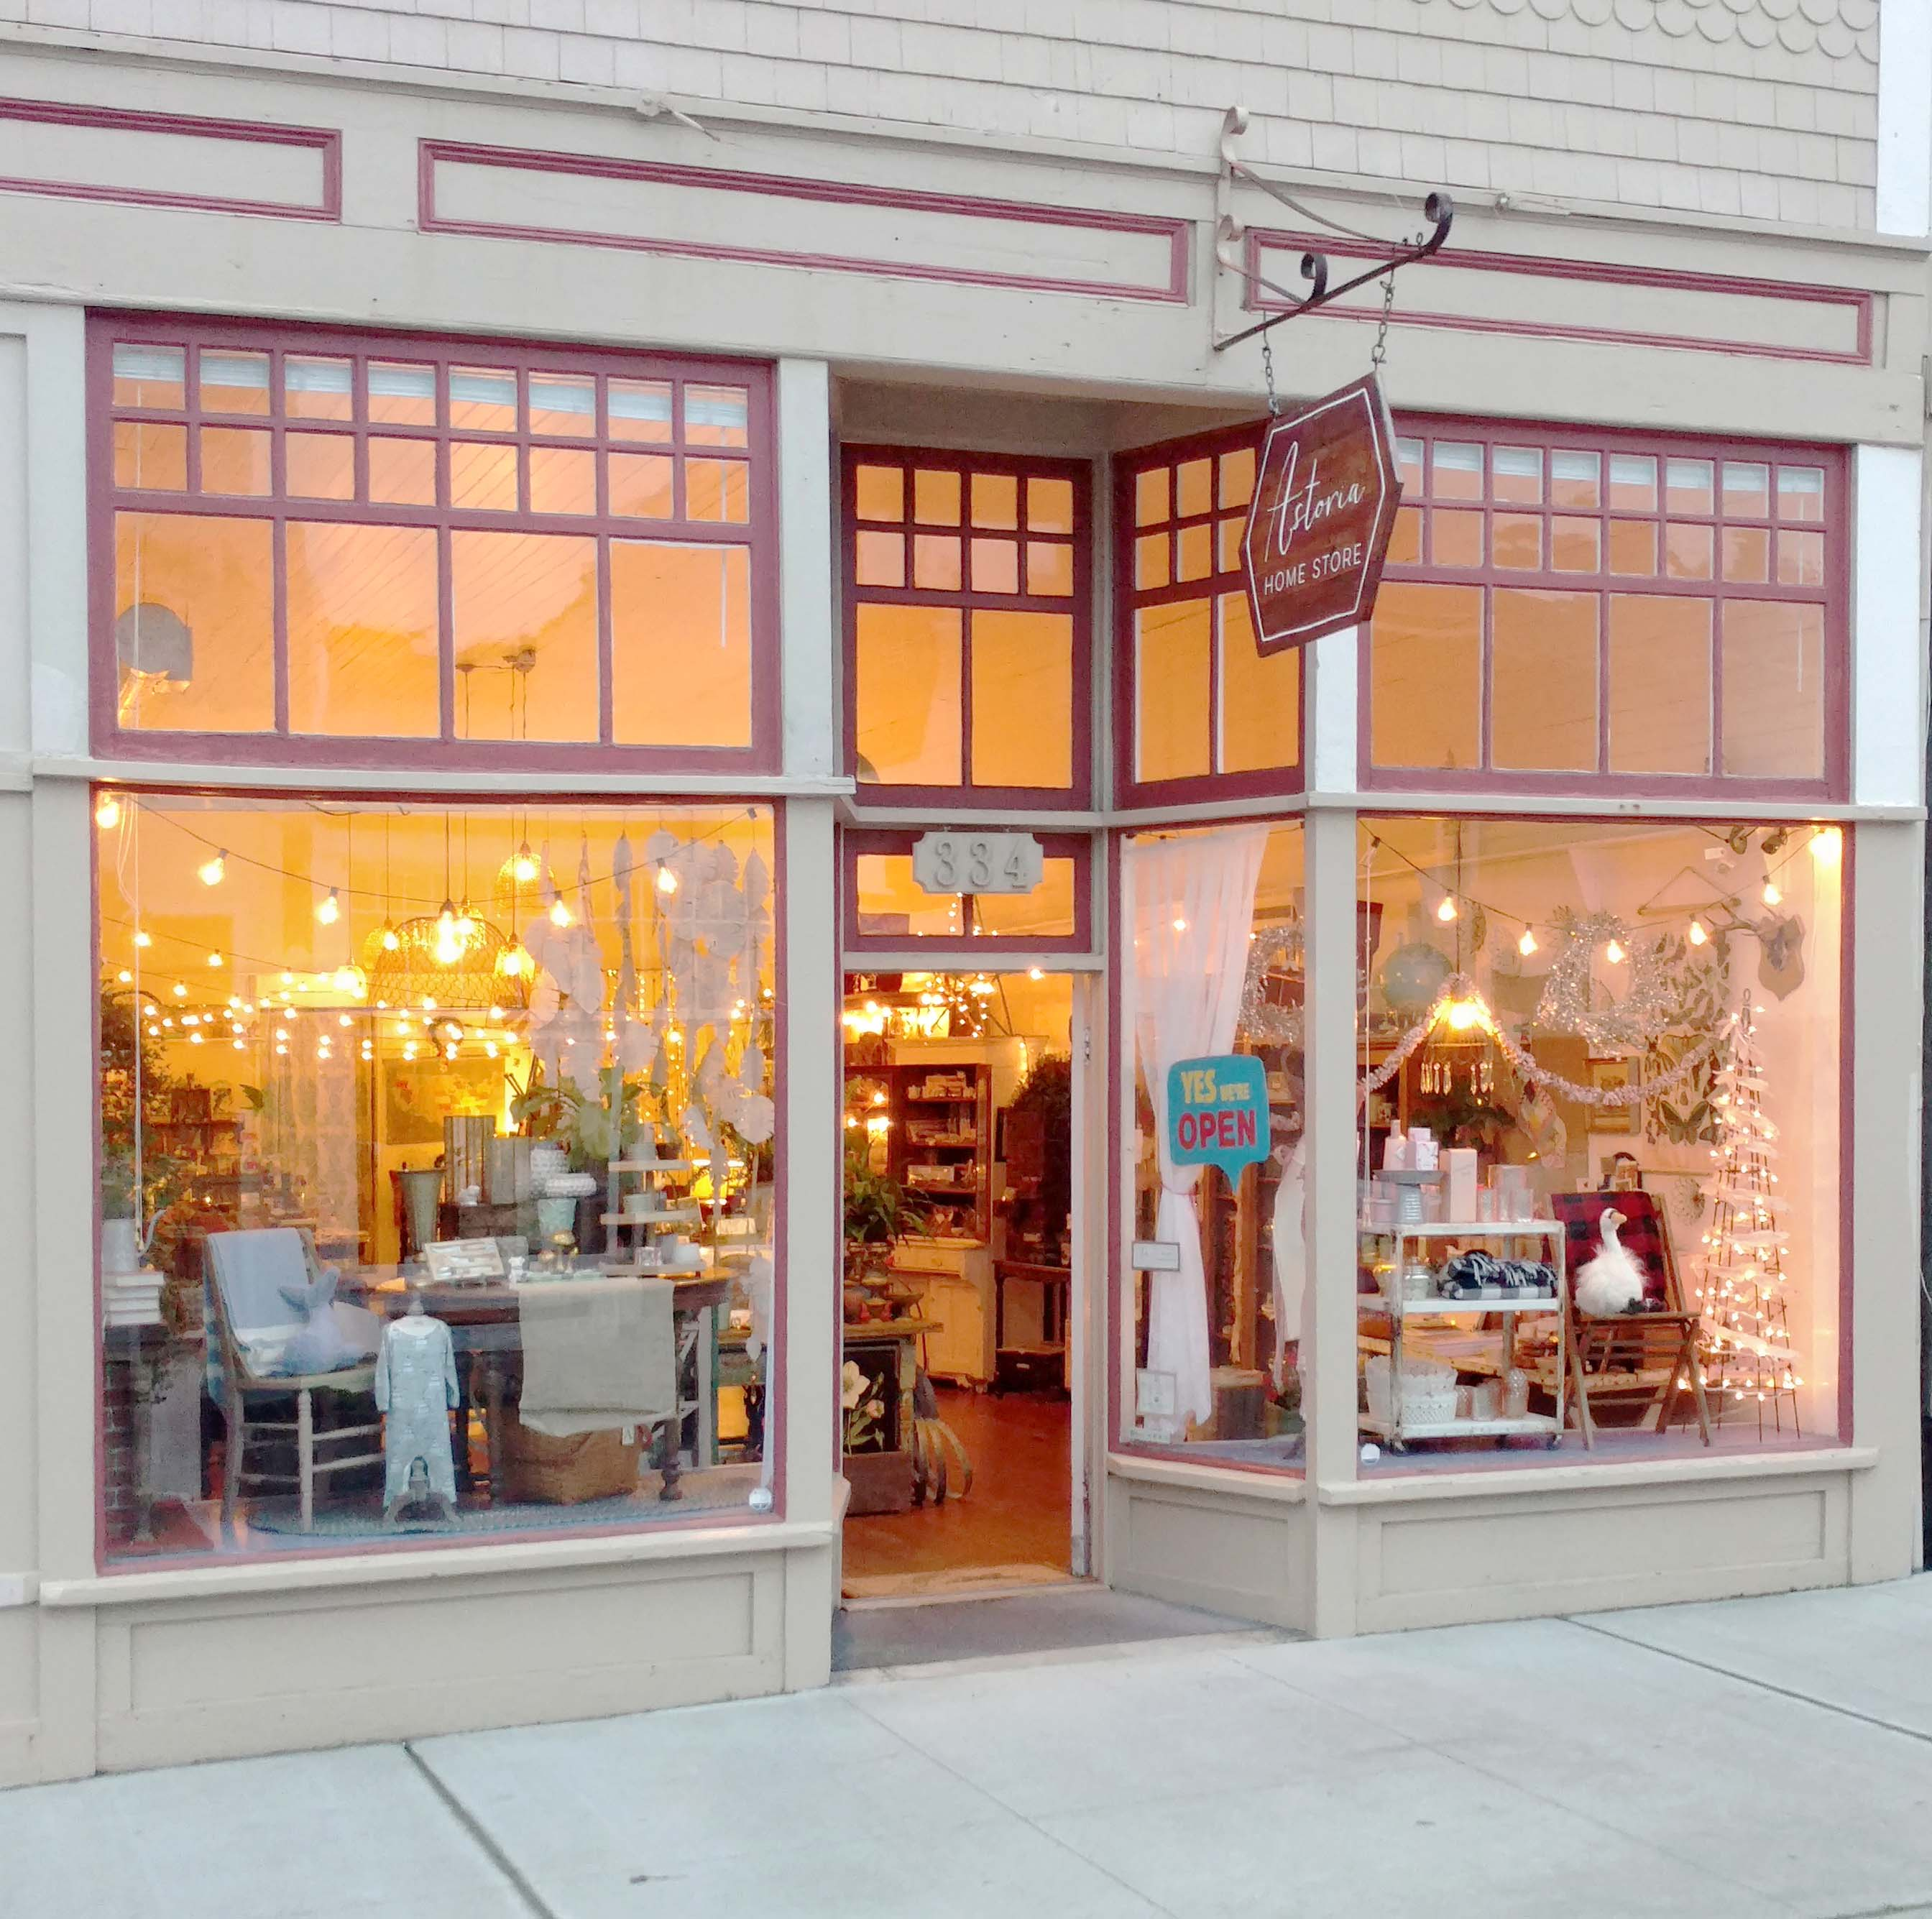 Home Design Gift Ideas: Astoria Home Decor And Gift Shop